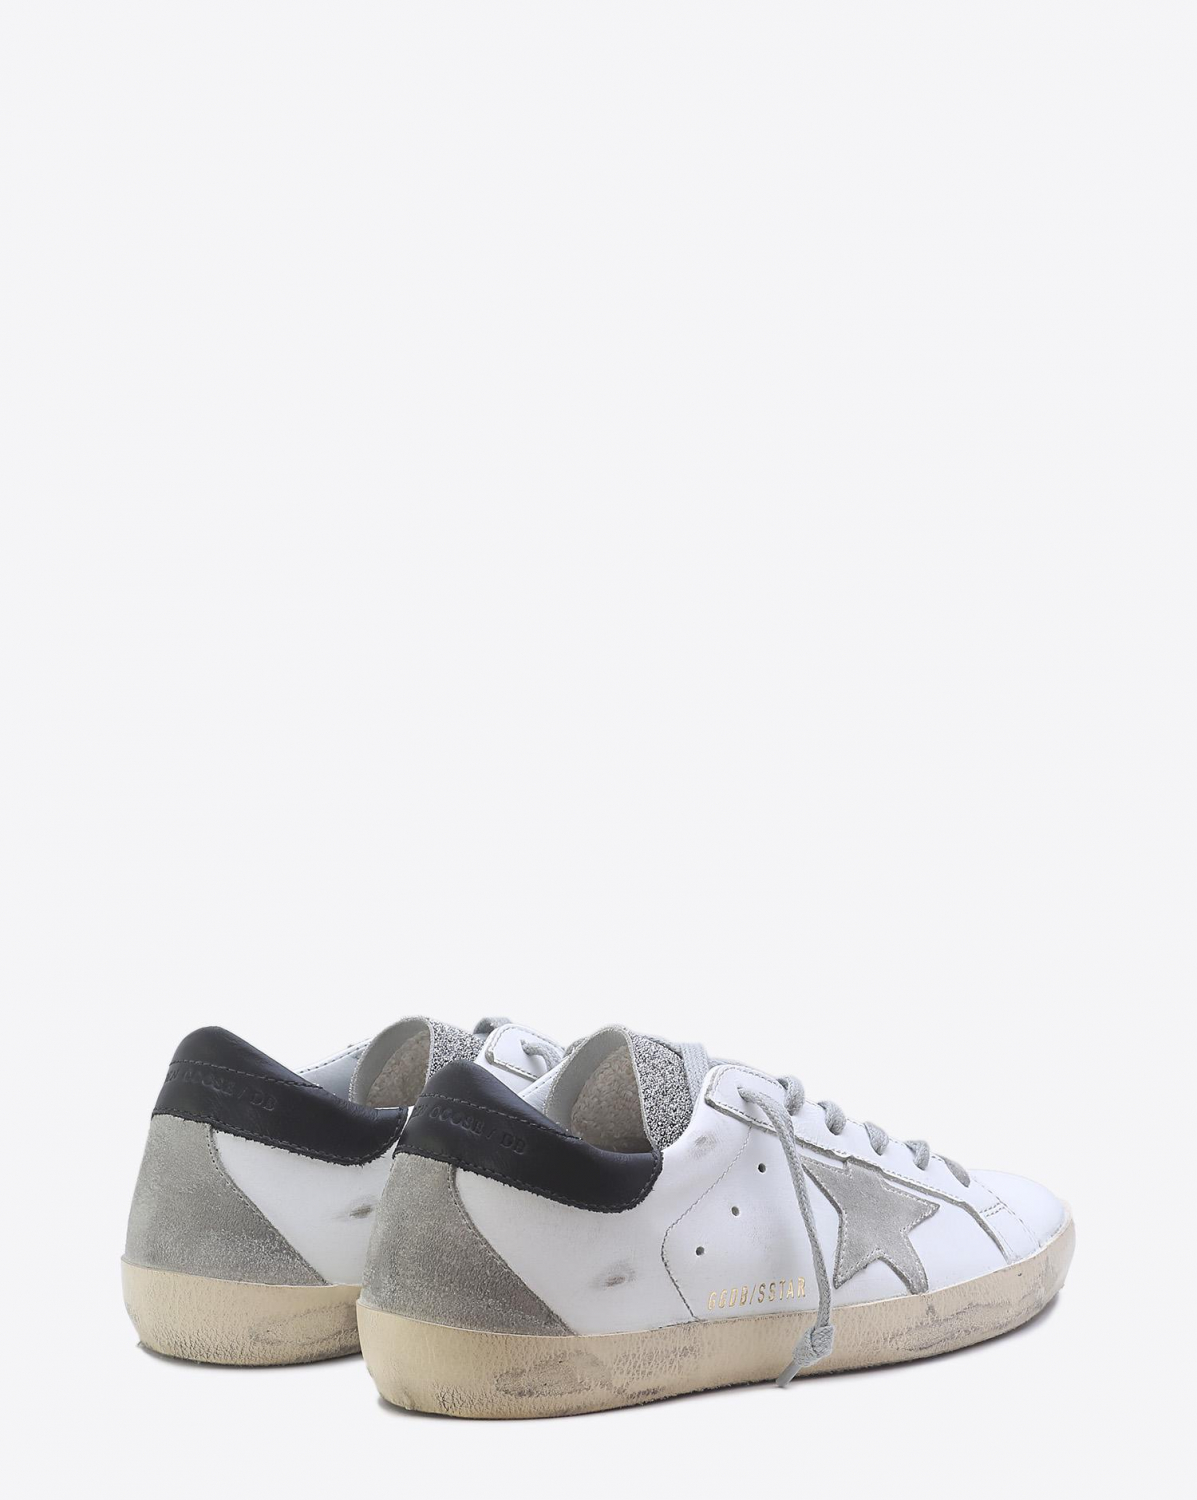 Golden Goose Woman Pré-Collection Sneakers Superstar - White Glitter Crystal